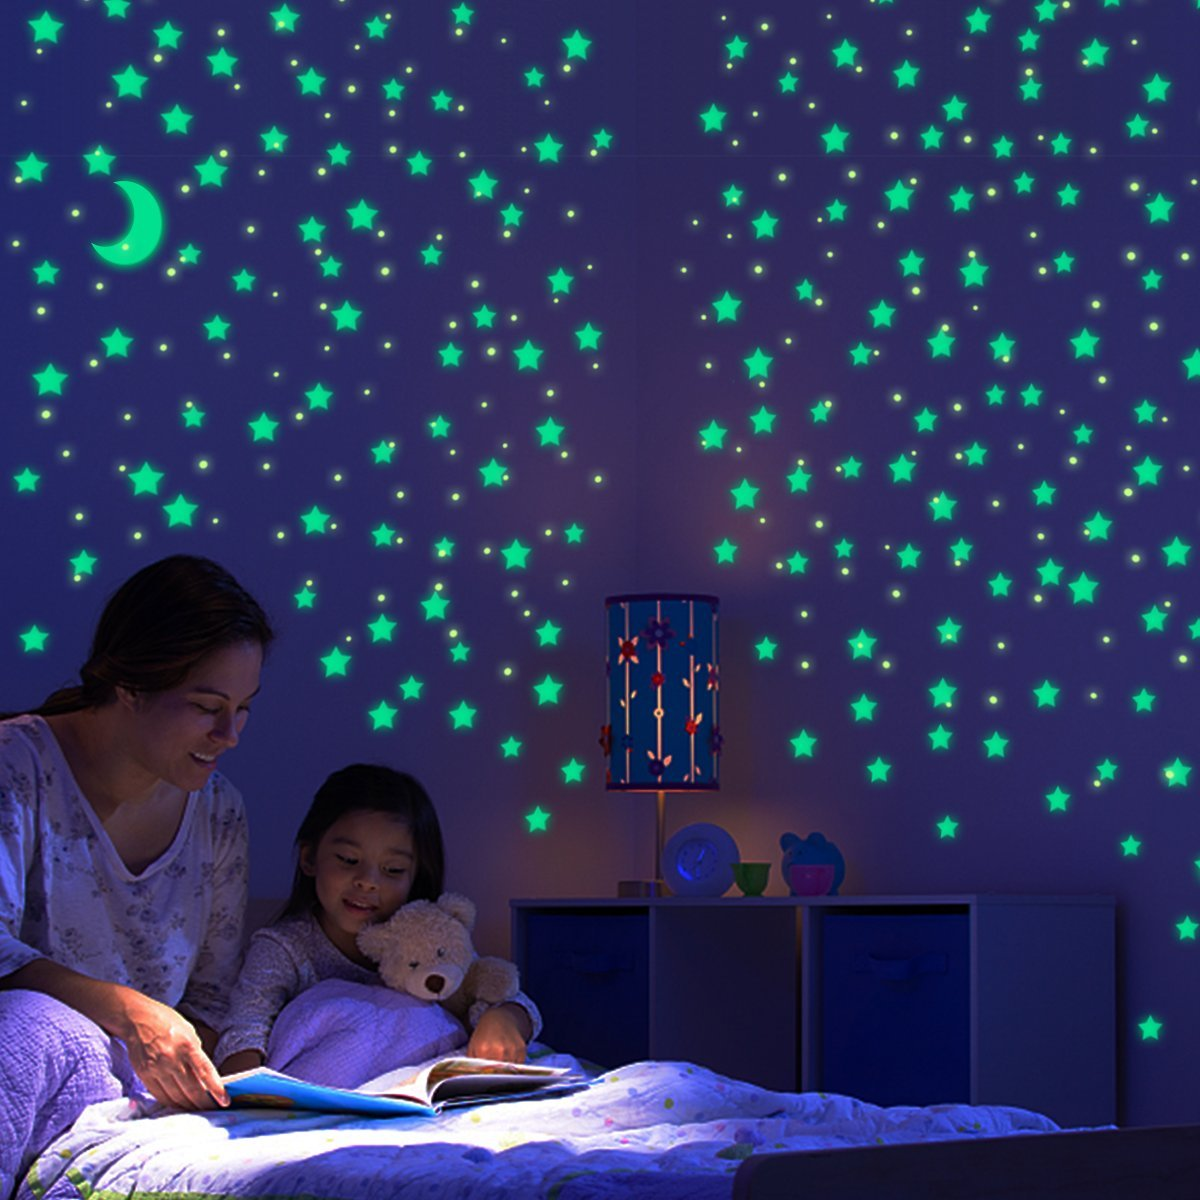 IBEET Glow in the Dark Stars,5 Sheets 216 PCS Self-adhesive Luminous No Trace Multipurpose Glowing Star Stickers with Moon,for Kids Bedding Room,Wall,Cup,Clothes,Party Decoration